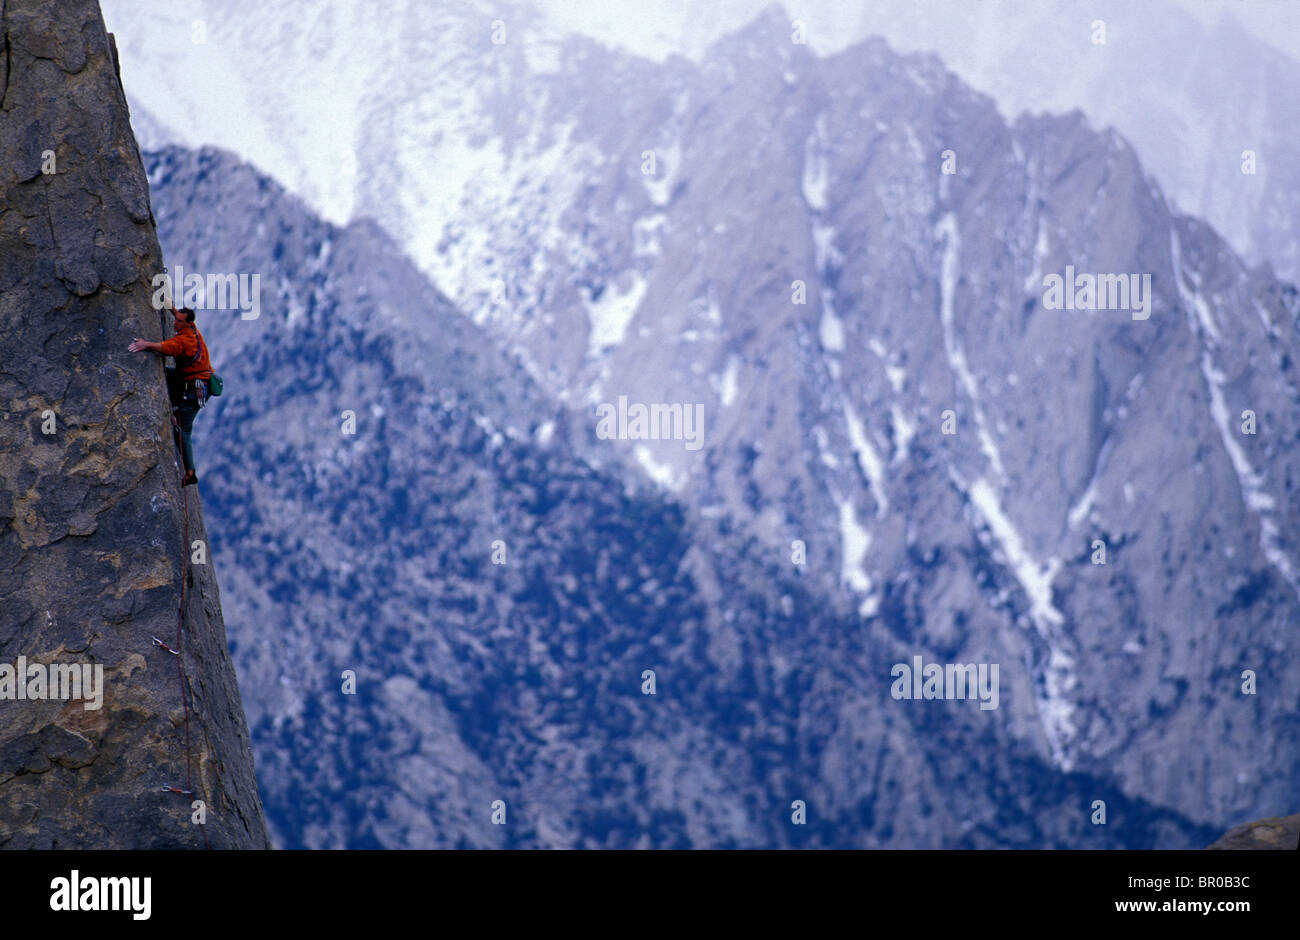 A male rock climber in an alpine setting. - Stock Image